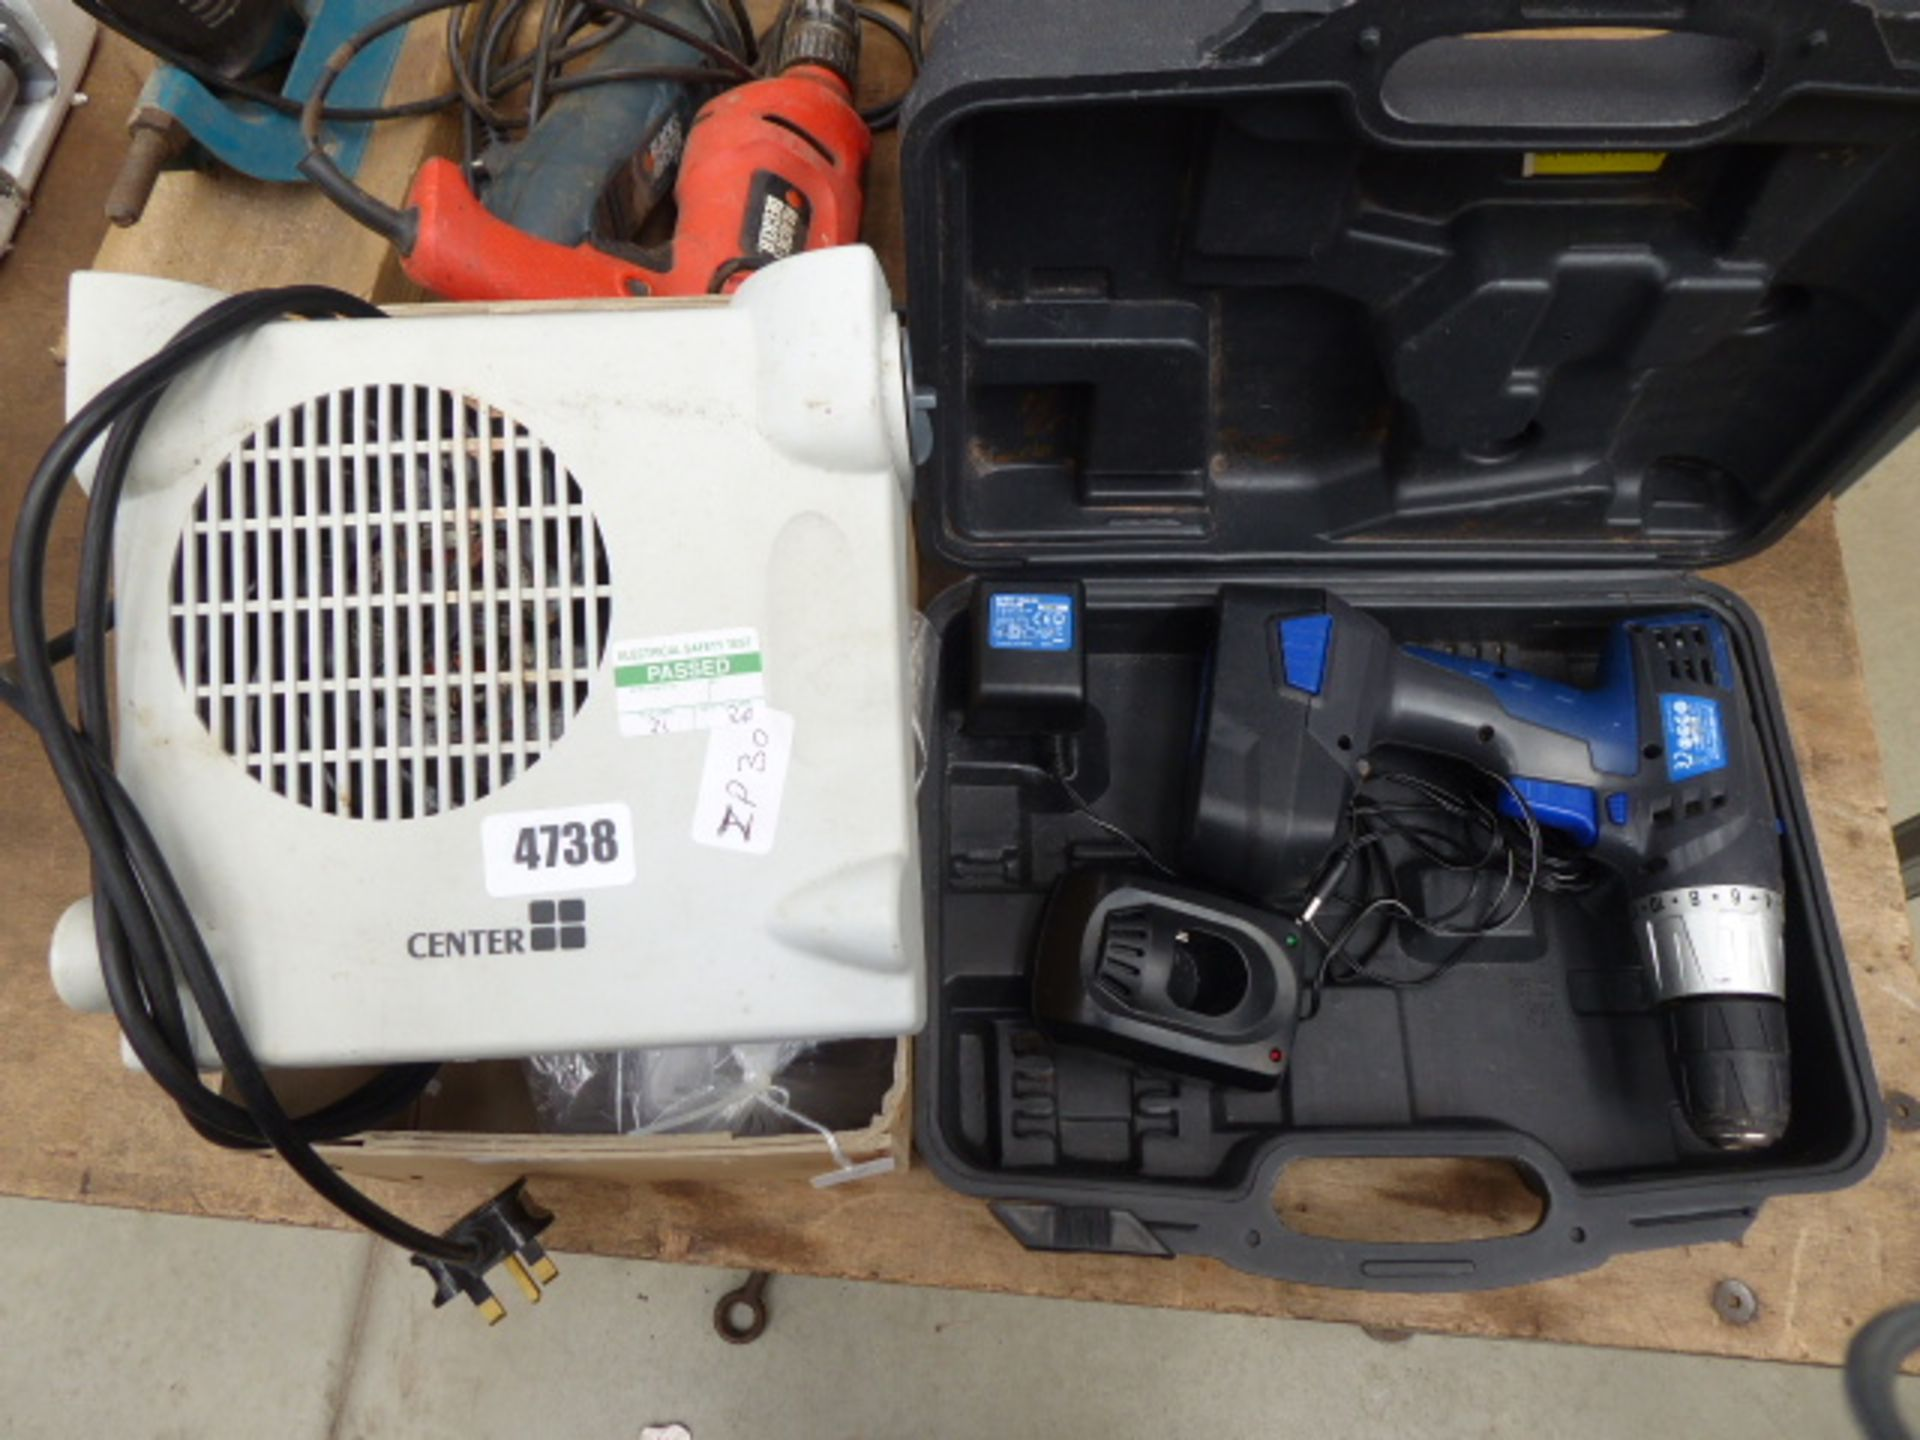 Lot 4738 - Small heater and a battery drill